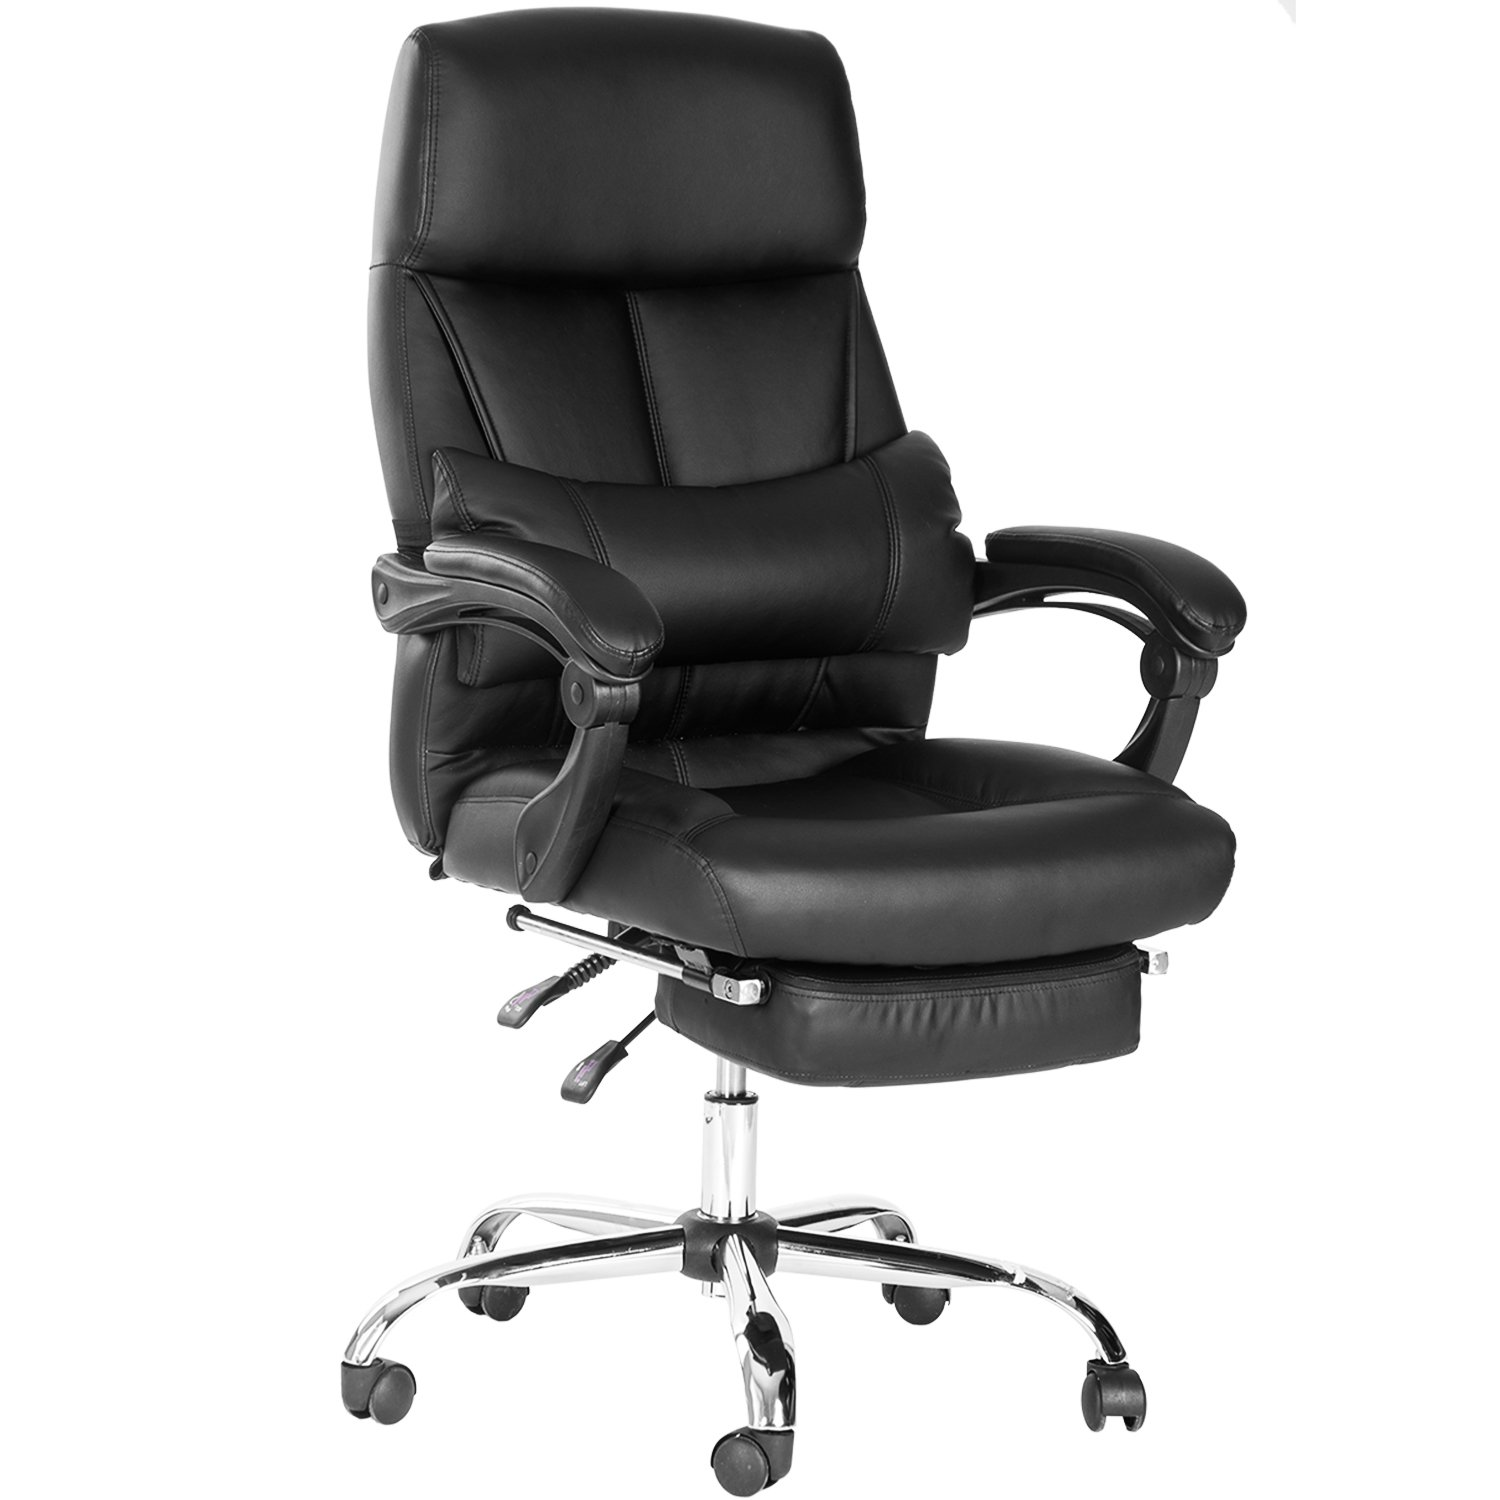 Most Comfortable Desk Chair 2017 Most Comfortable Office